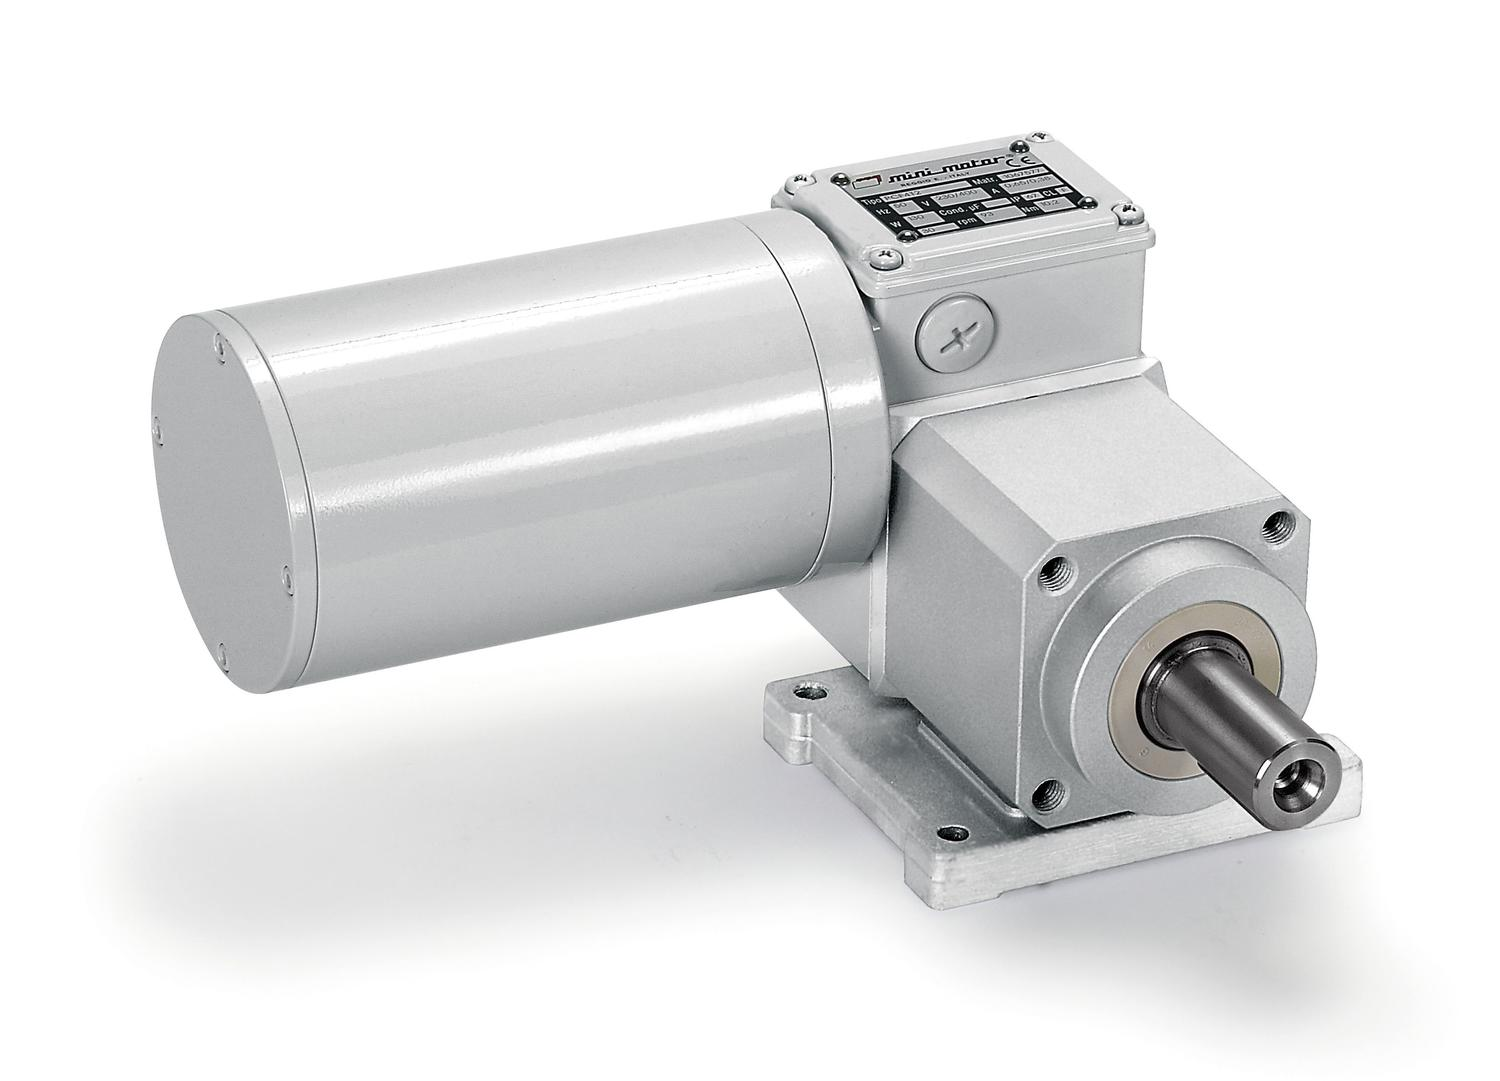 PCEF worm geared motor with further planetary gear